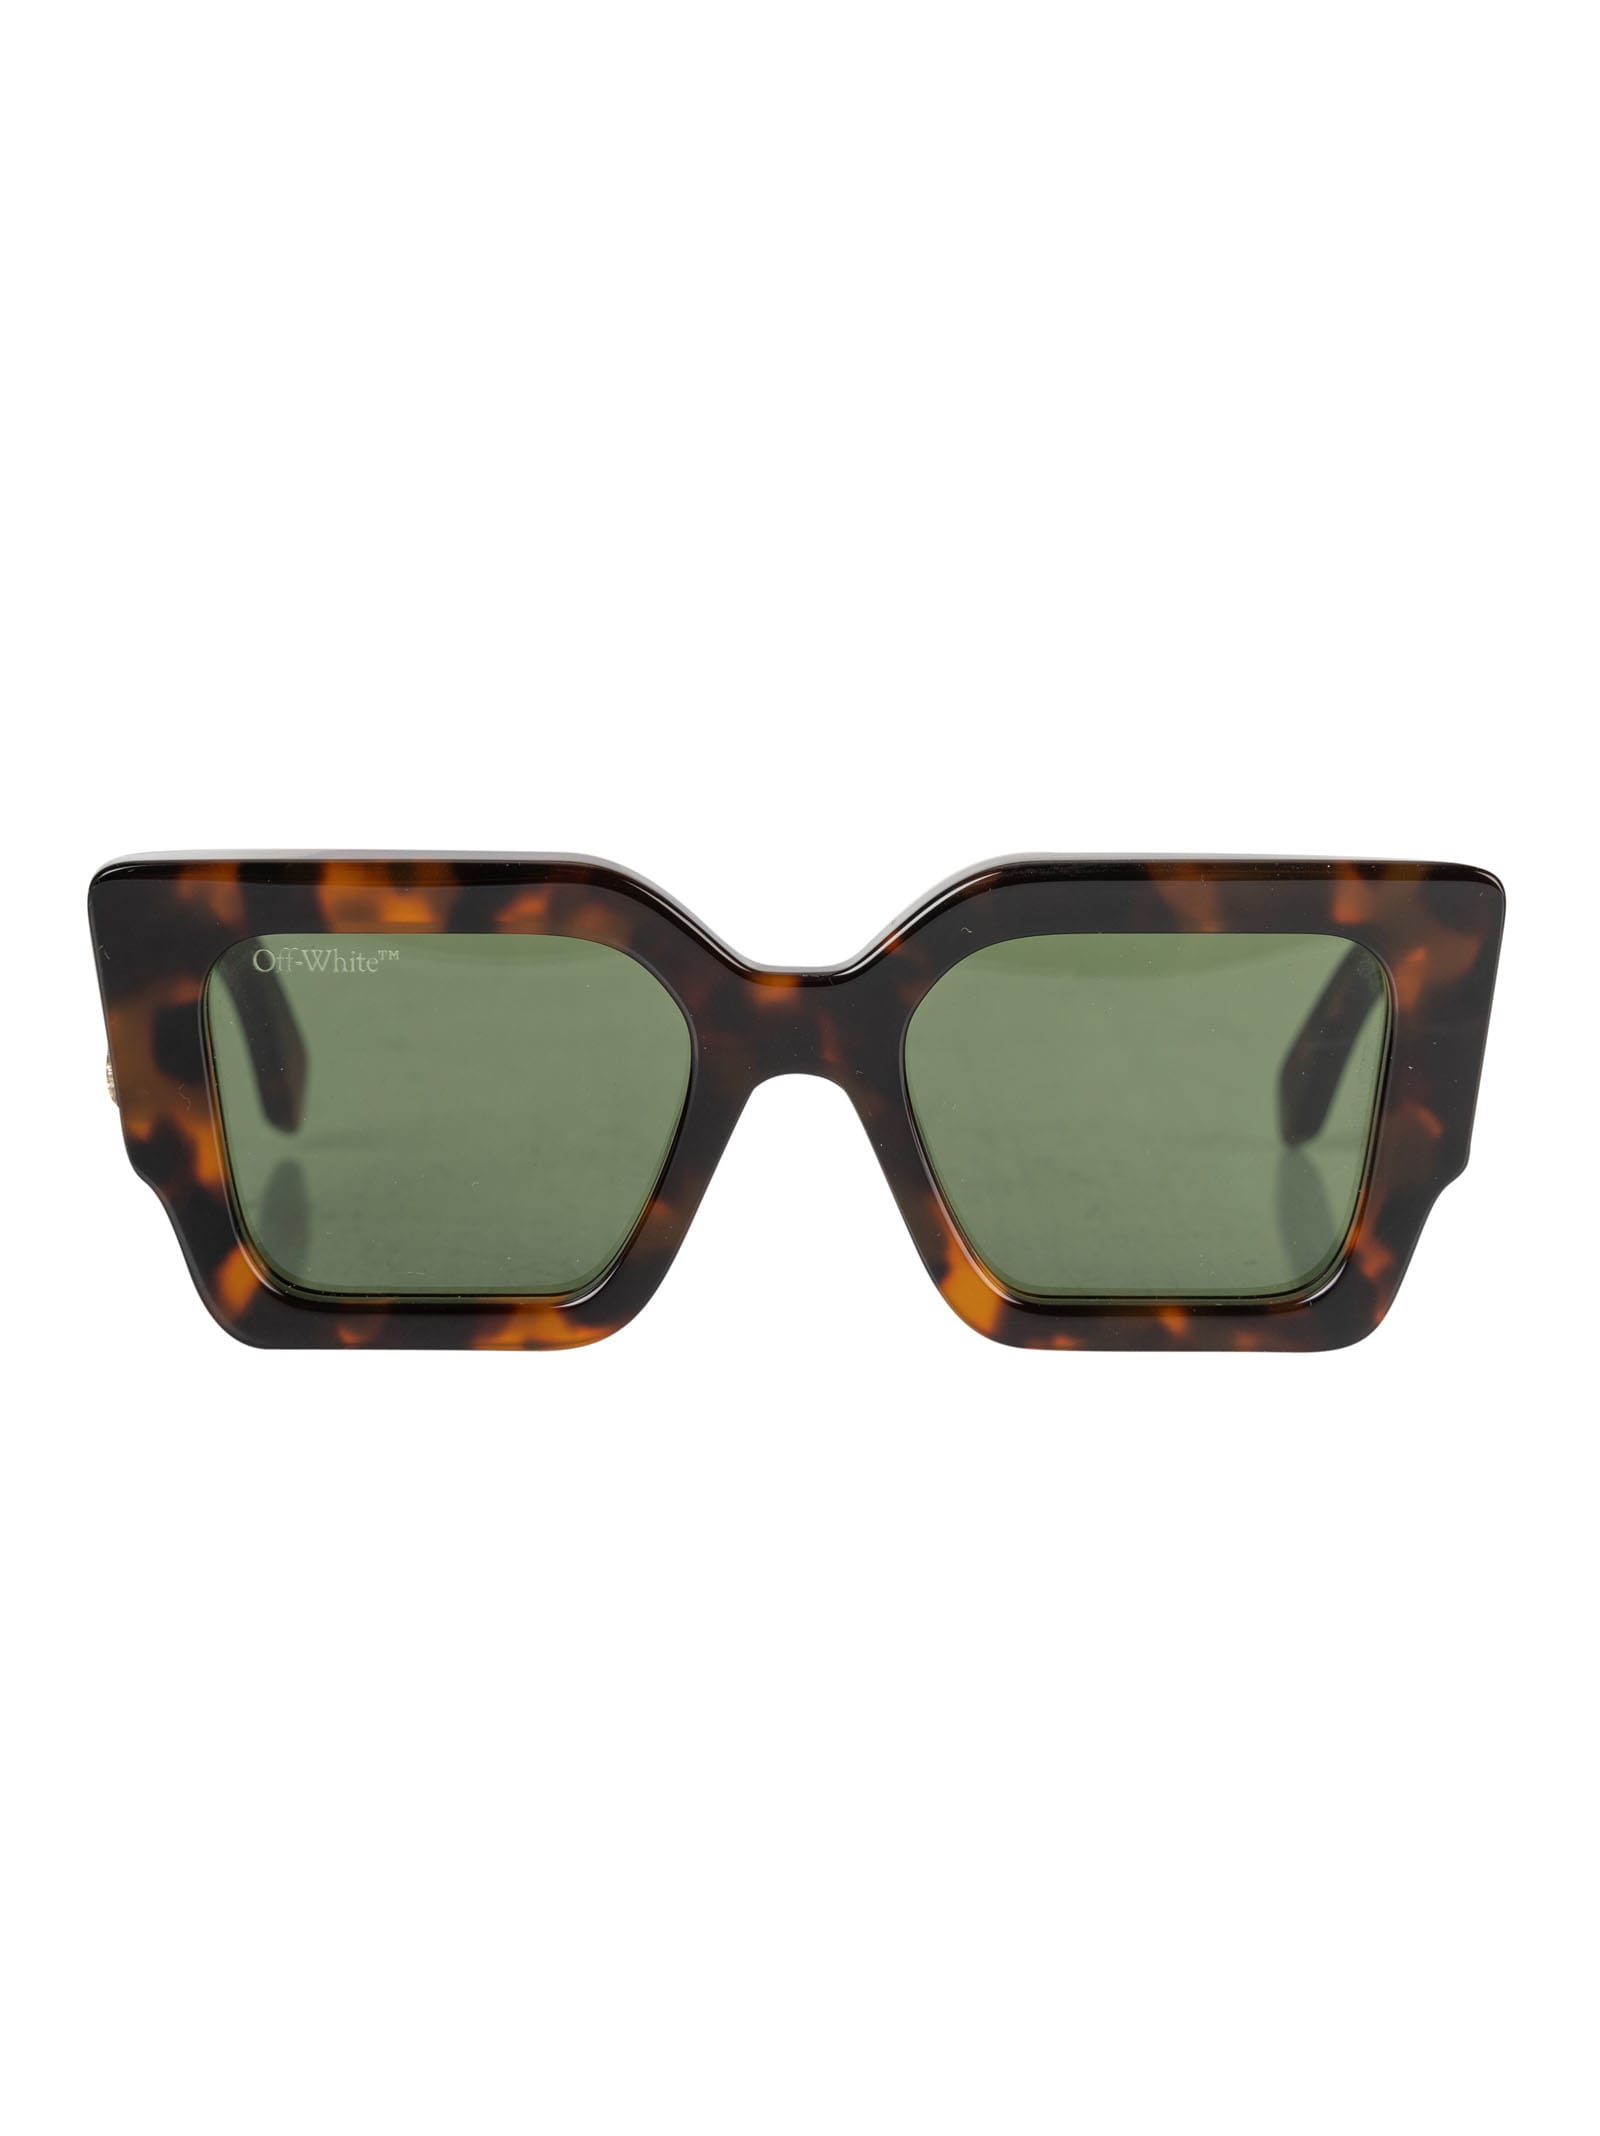 Off-white Catalina Sunglasses In Brown/green